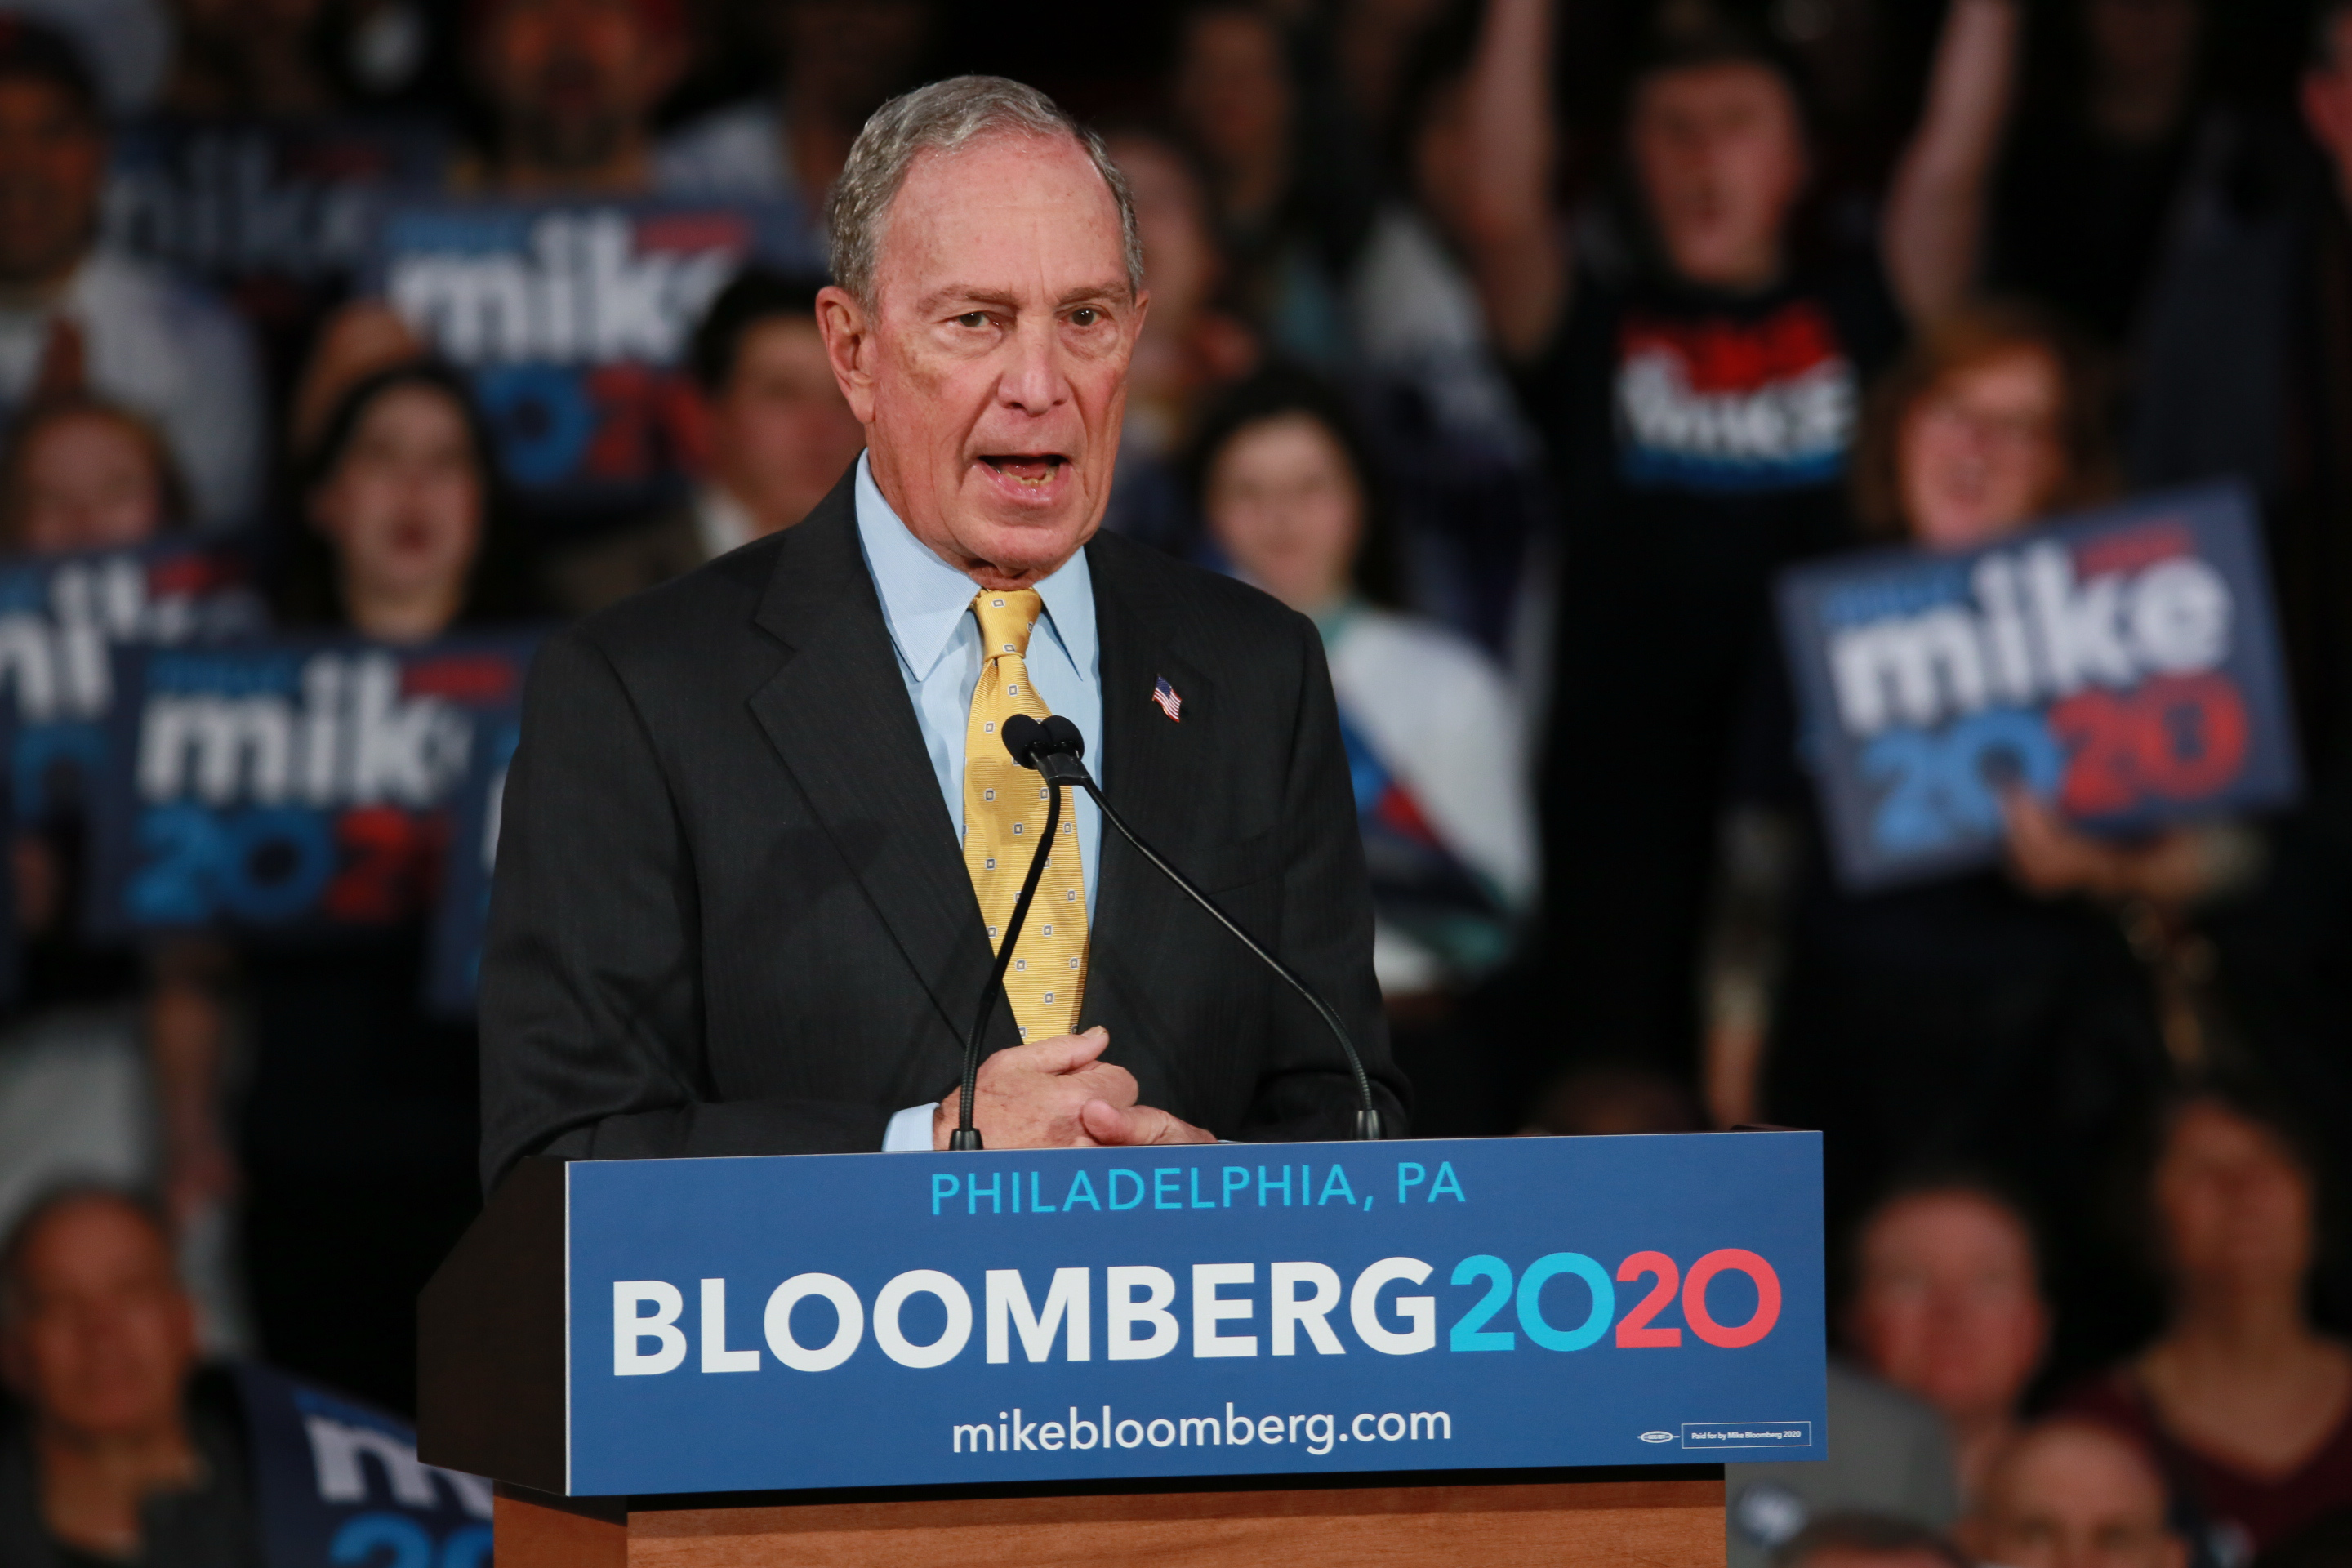 Democratic Candidate Mike Bloomberg made a campaign Stop in Philadelphia at the National Constitution Center on 02/04/2020